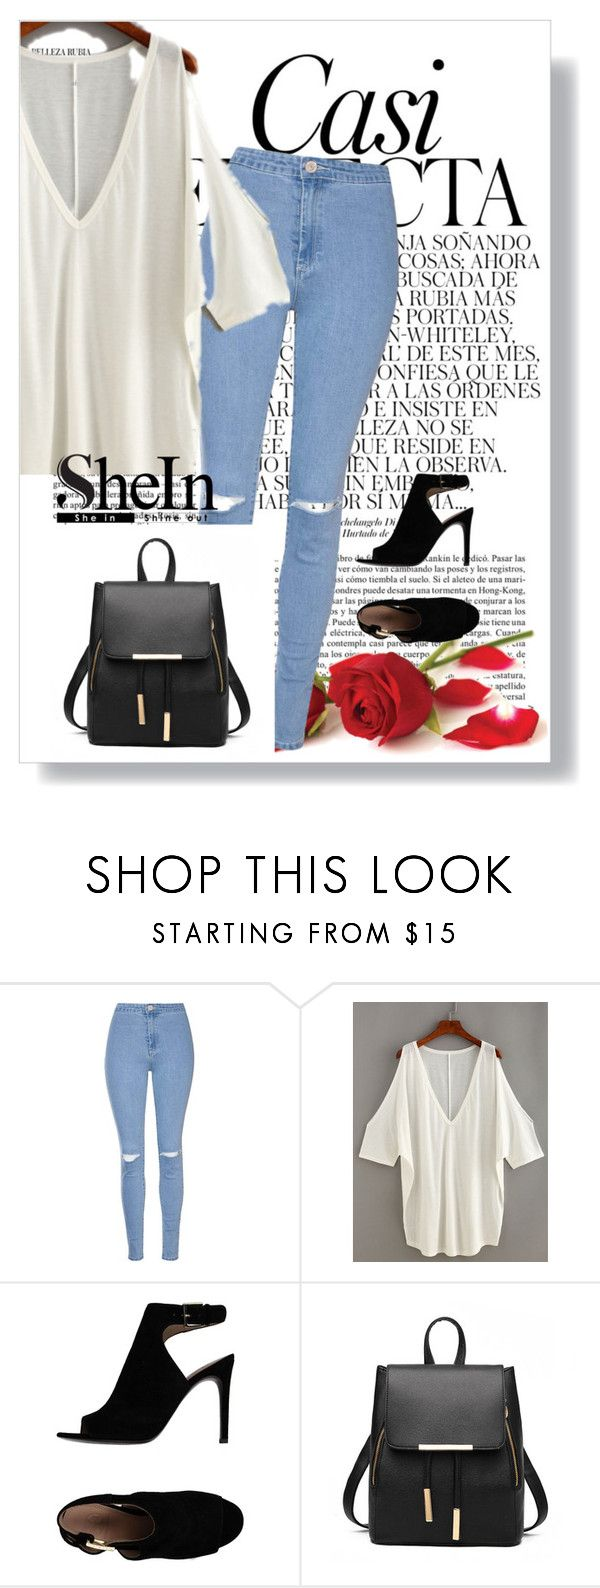 """Shein contest"" by melisadoll ❤ liked on Polyvore featuring Glamorous, Tory Burch and Whiteley"